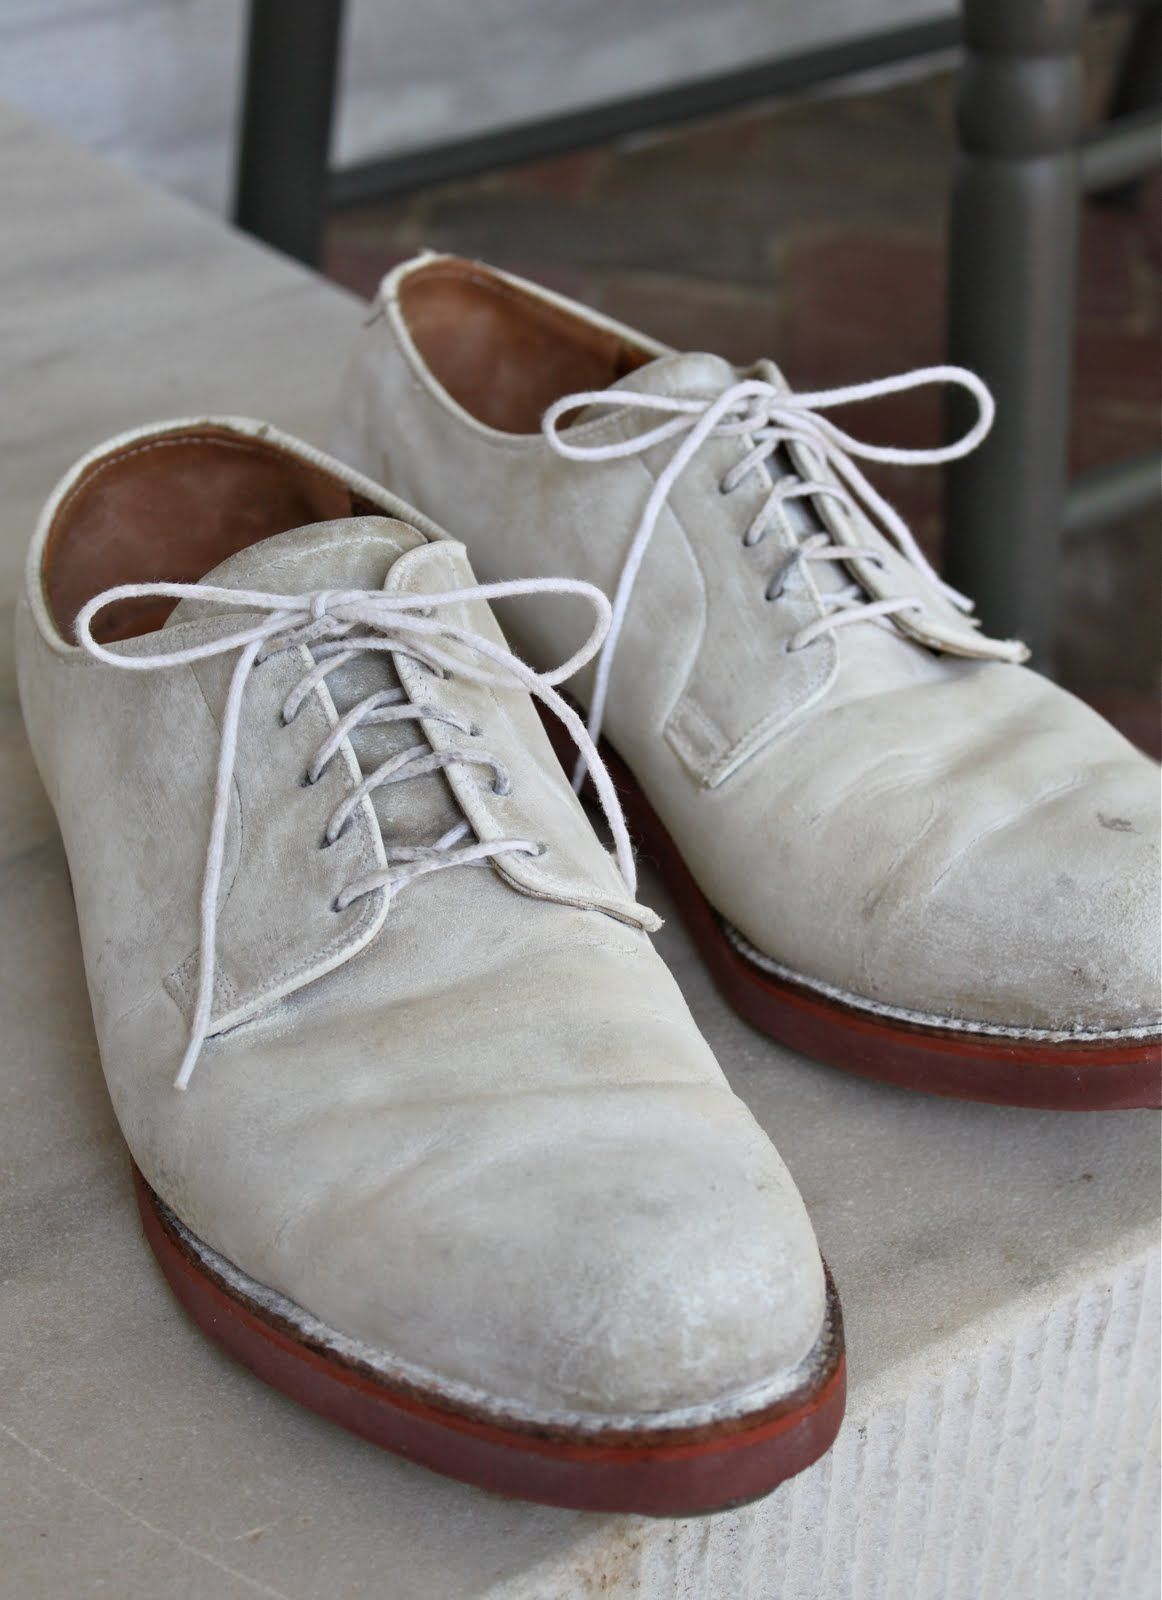 laced suede or buckskin shoes